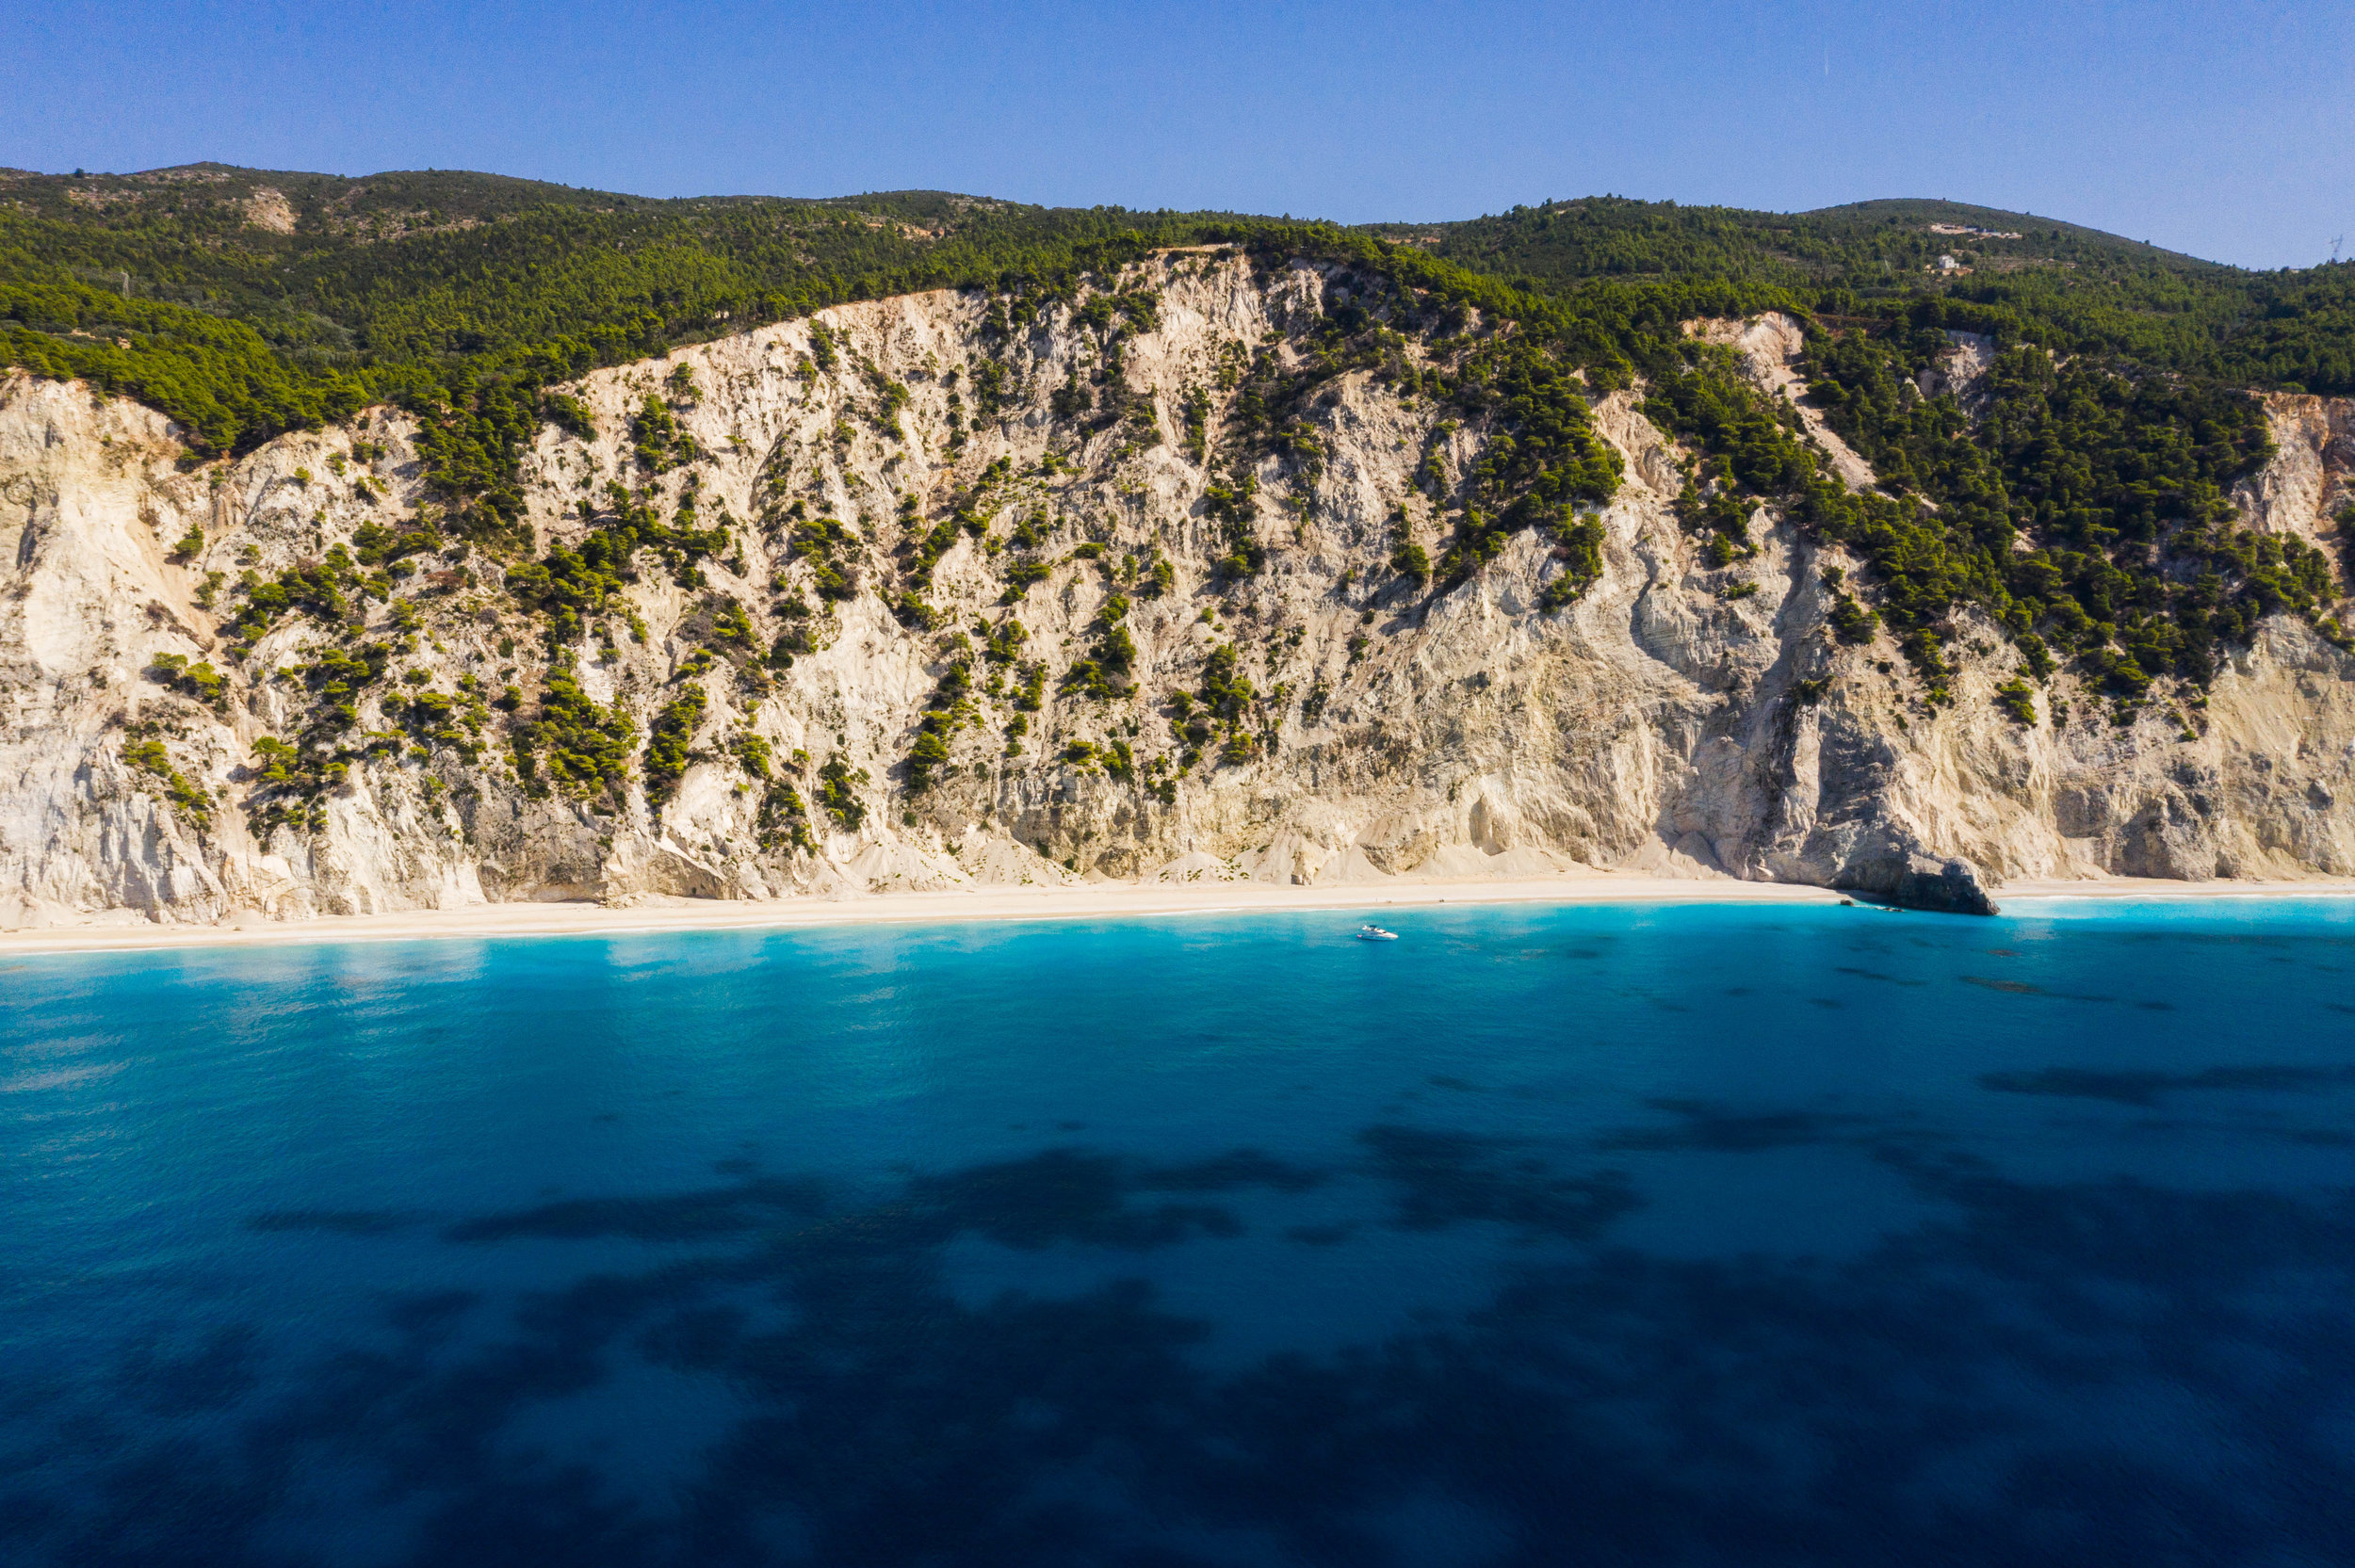 TRIP DETAILS - Departure : Lefkada TownReturn : Lefkada TownDeparture Time : 09:00 amArrival Time : 06:00 pmDuration : 9 hoursMax Capacity : 10 passengersPRICE: from €1250